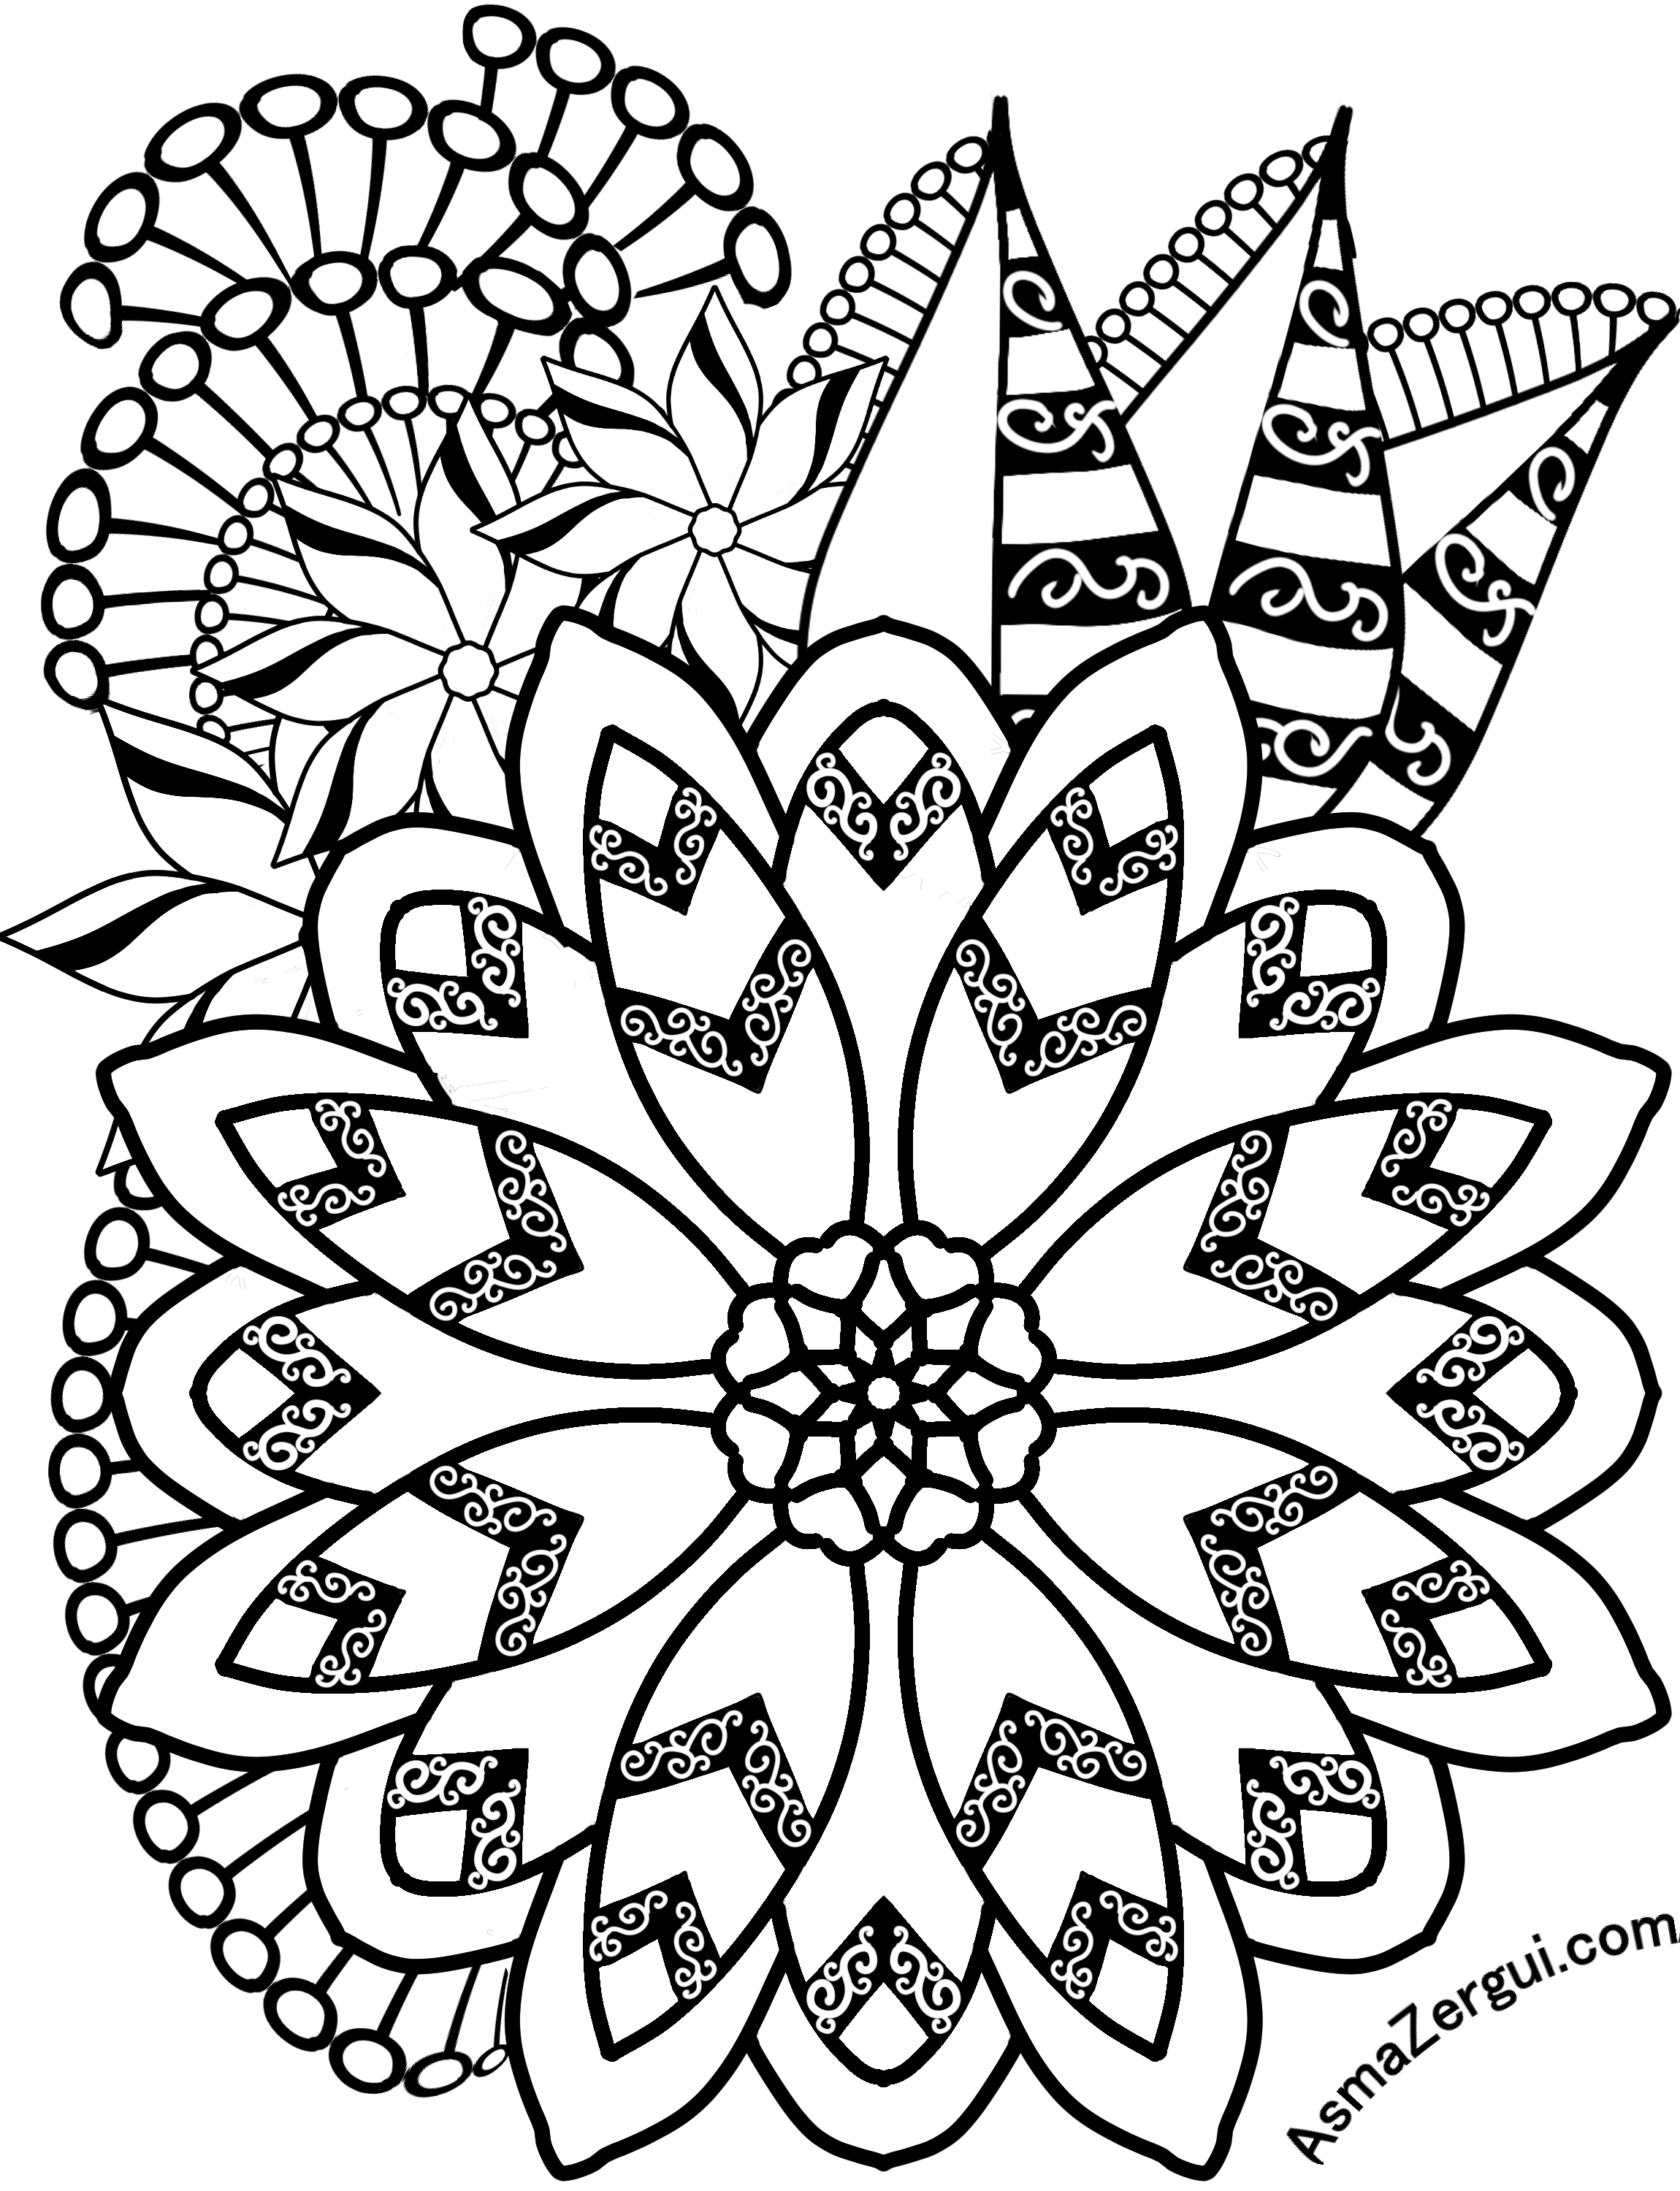 Free coloring pages adult coloring worldwide Coloring books for young adults